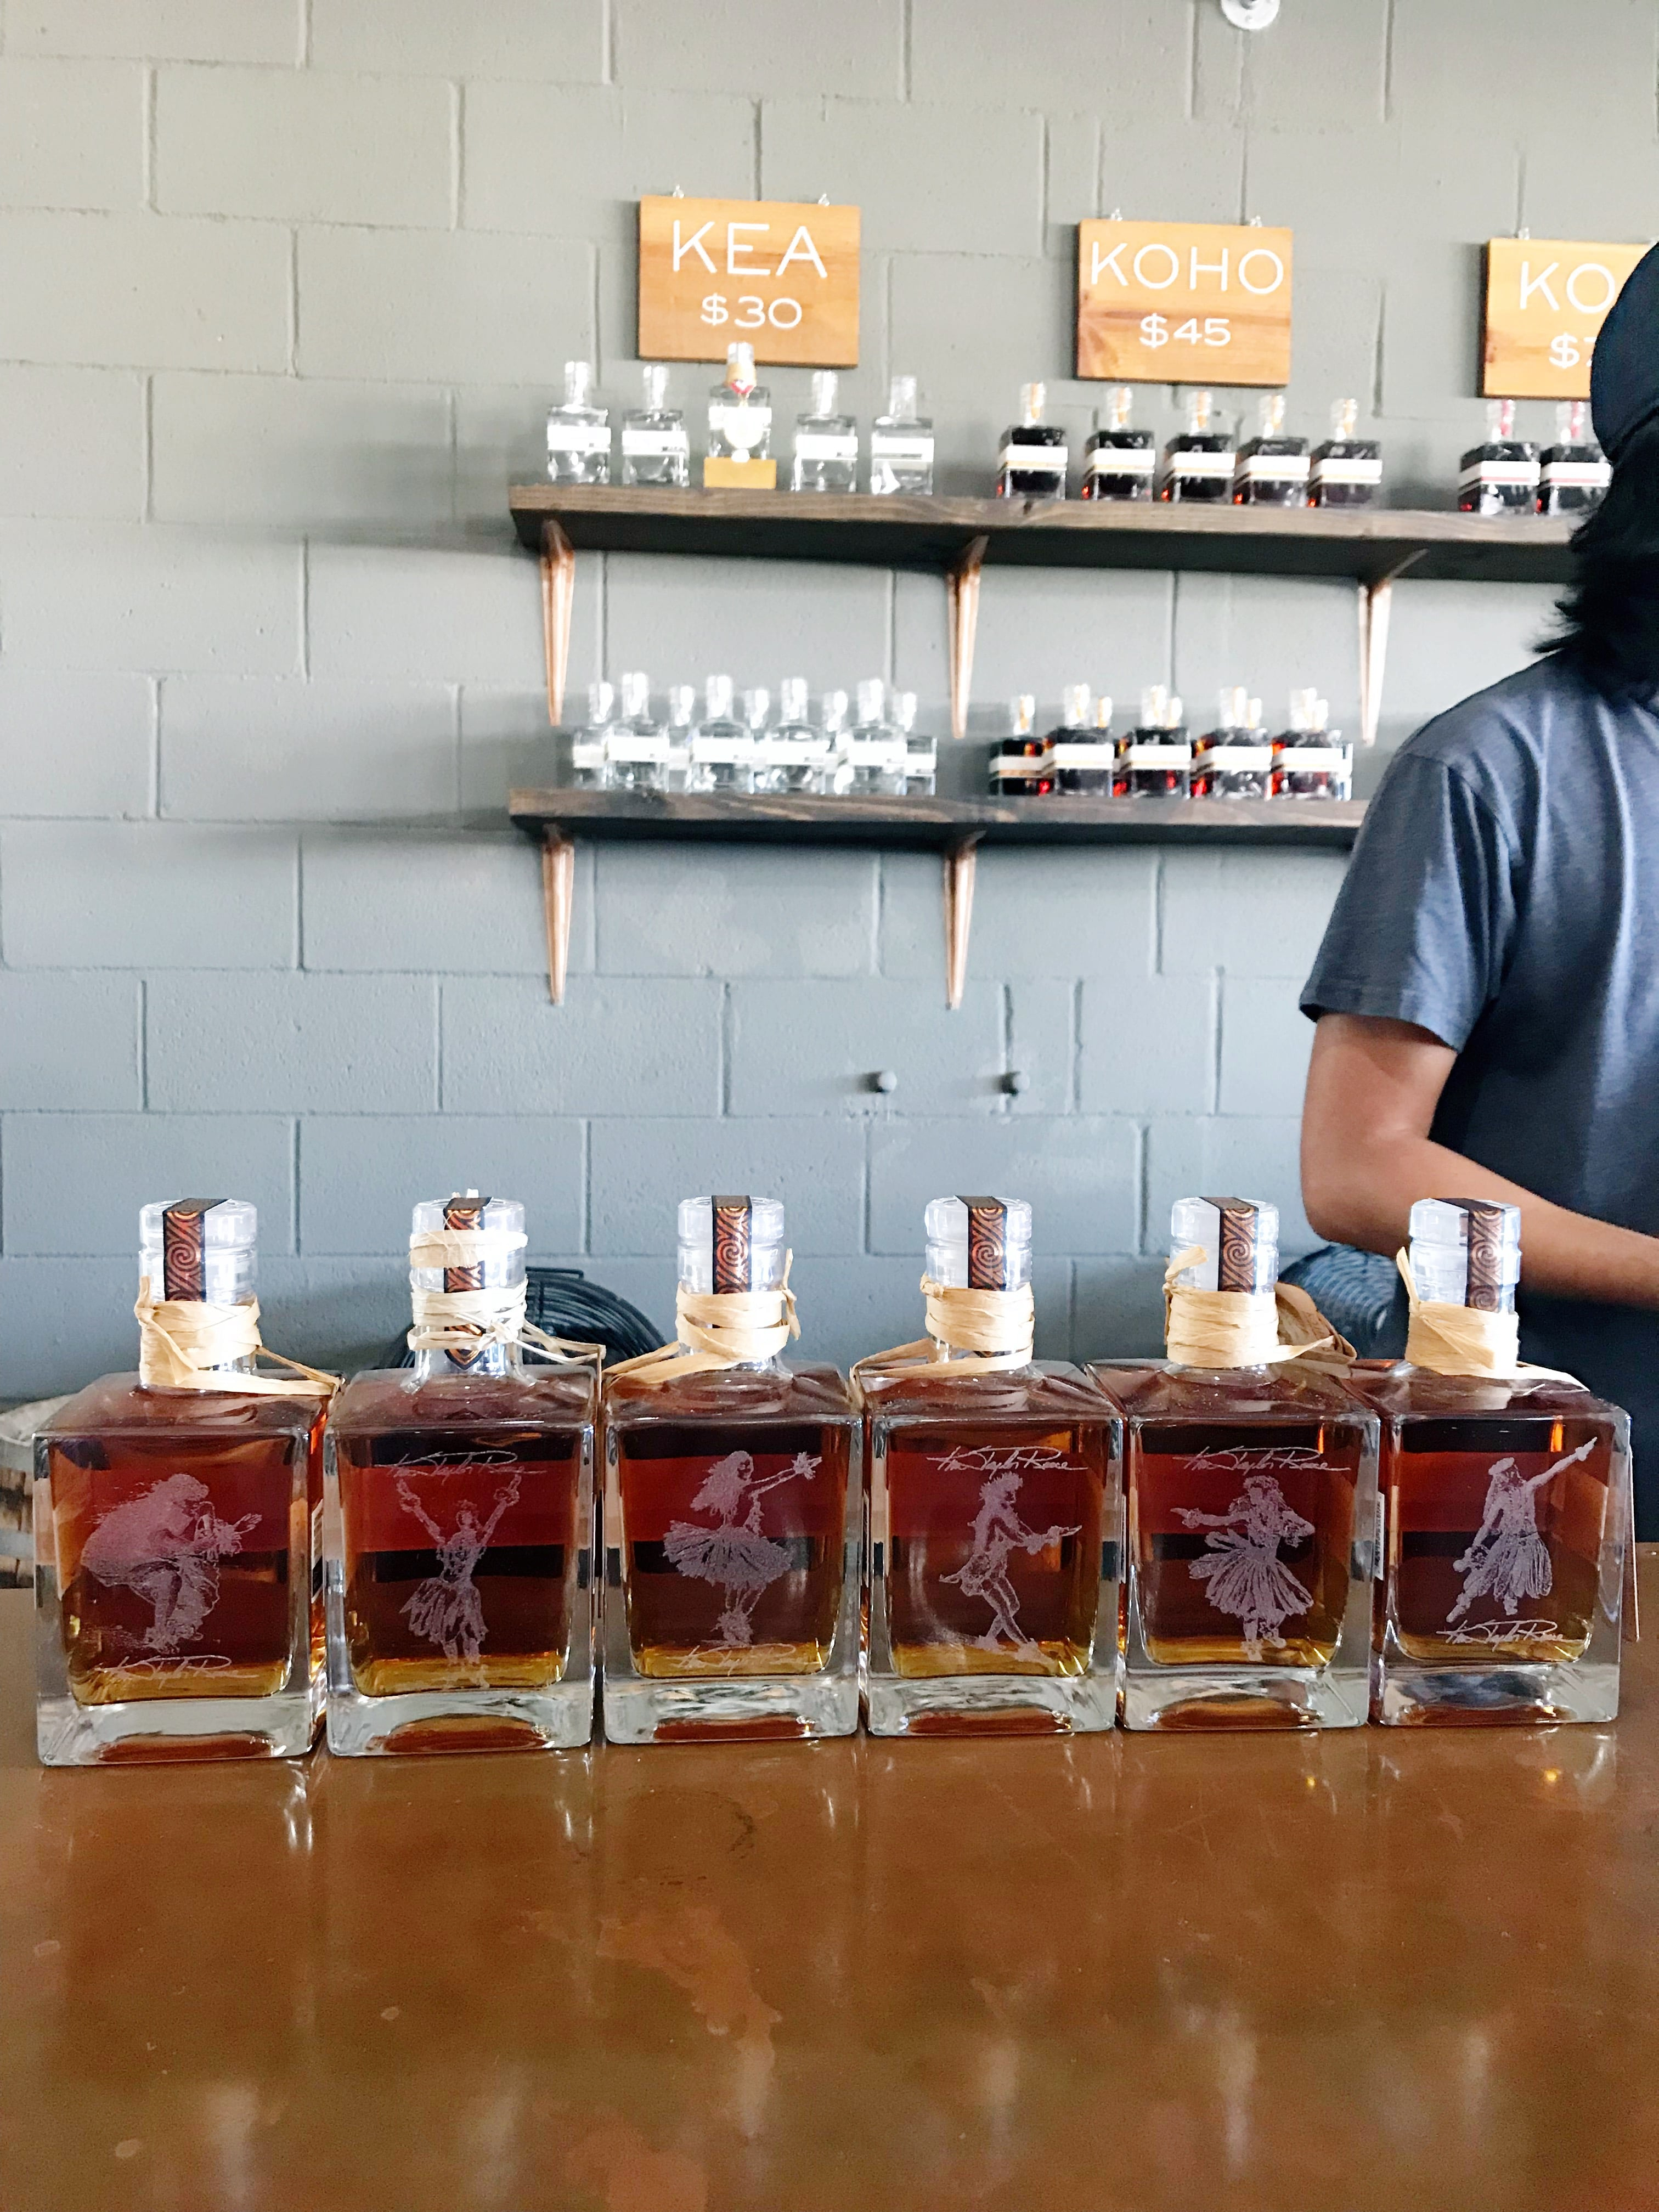 Touring KōHana Rum Distillery + Tasting Room - Oahu Hawaii - Hawaii Vacation - What to do on Oahu - Day trip from Honolulu - #hawaii #oahu #KoHana #Manulele